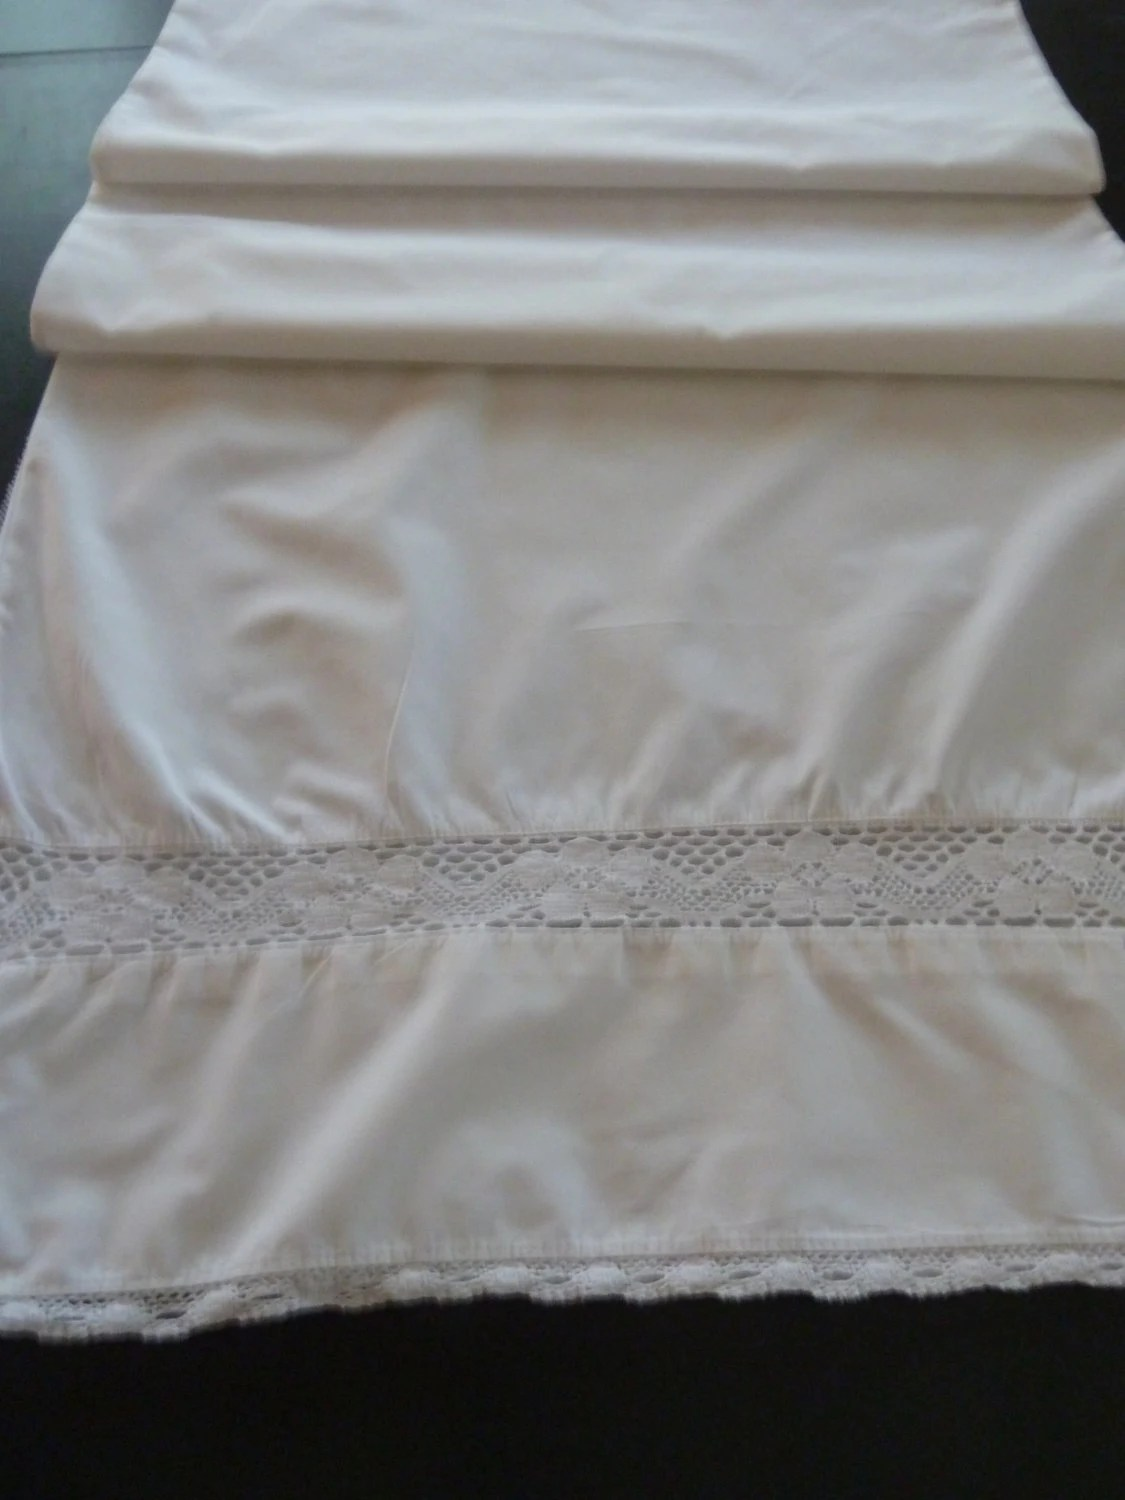 Long Euro Bolster Body Pillow Case For A Tiny Bit Of Lacey